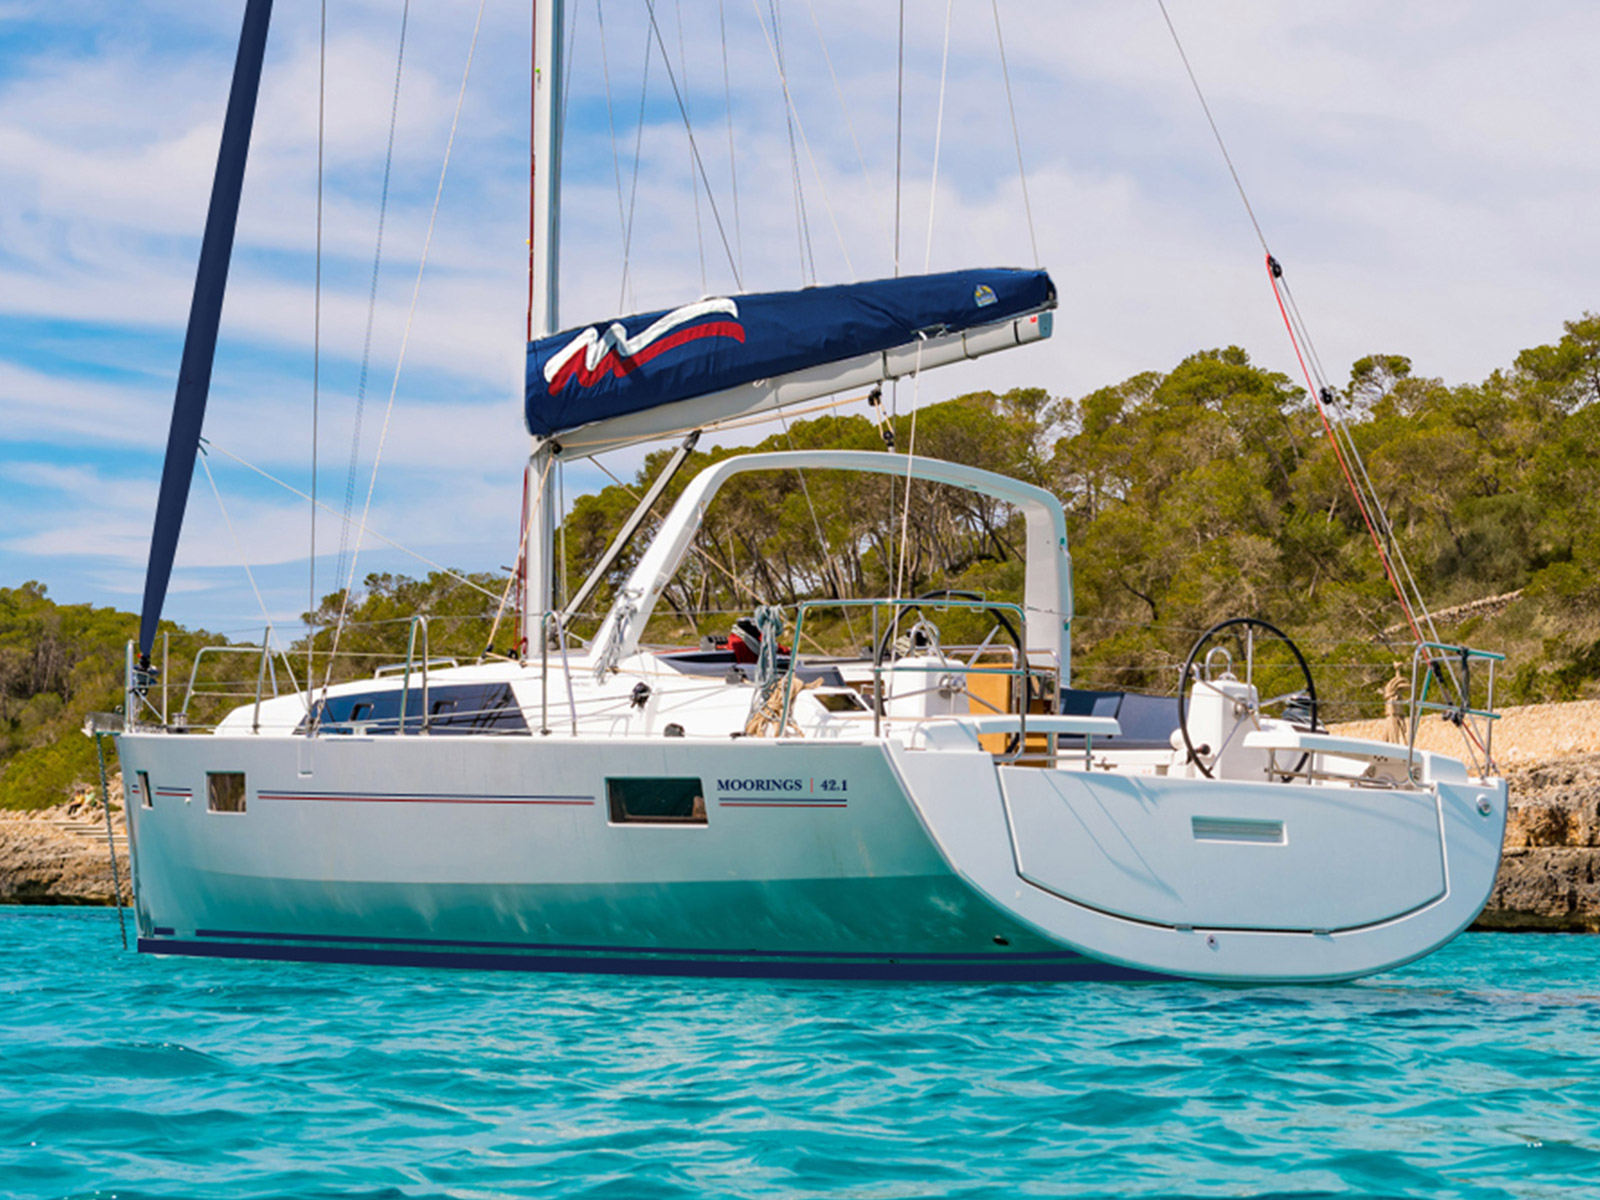 Yacht charter Moorings 42.1 - Caribbean, Grenada, St Georges